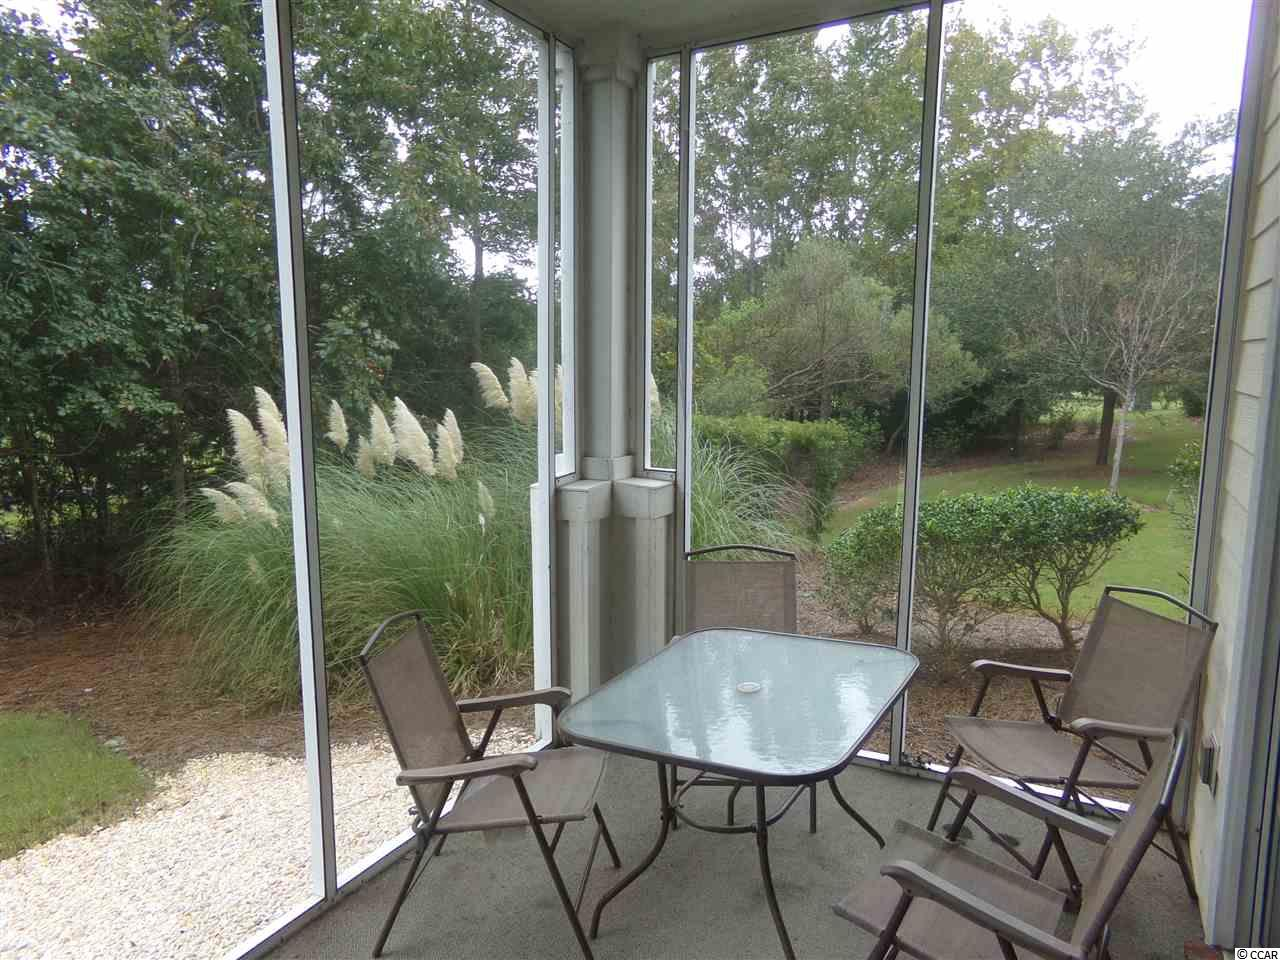 The Havens @ Barefoot Resort  condo now for sale